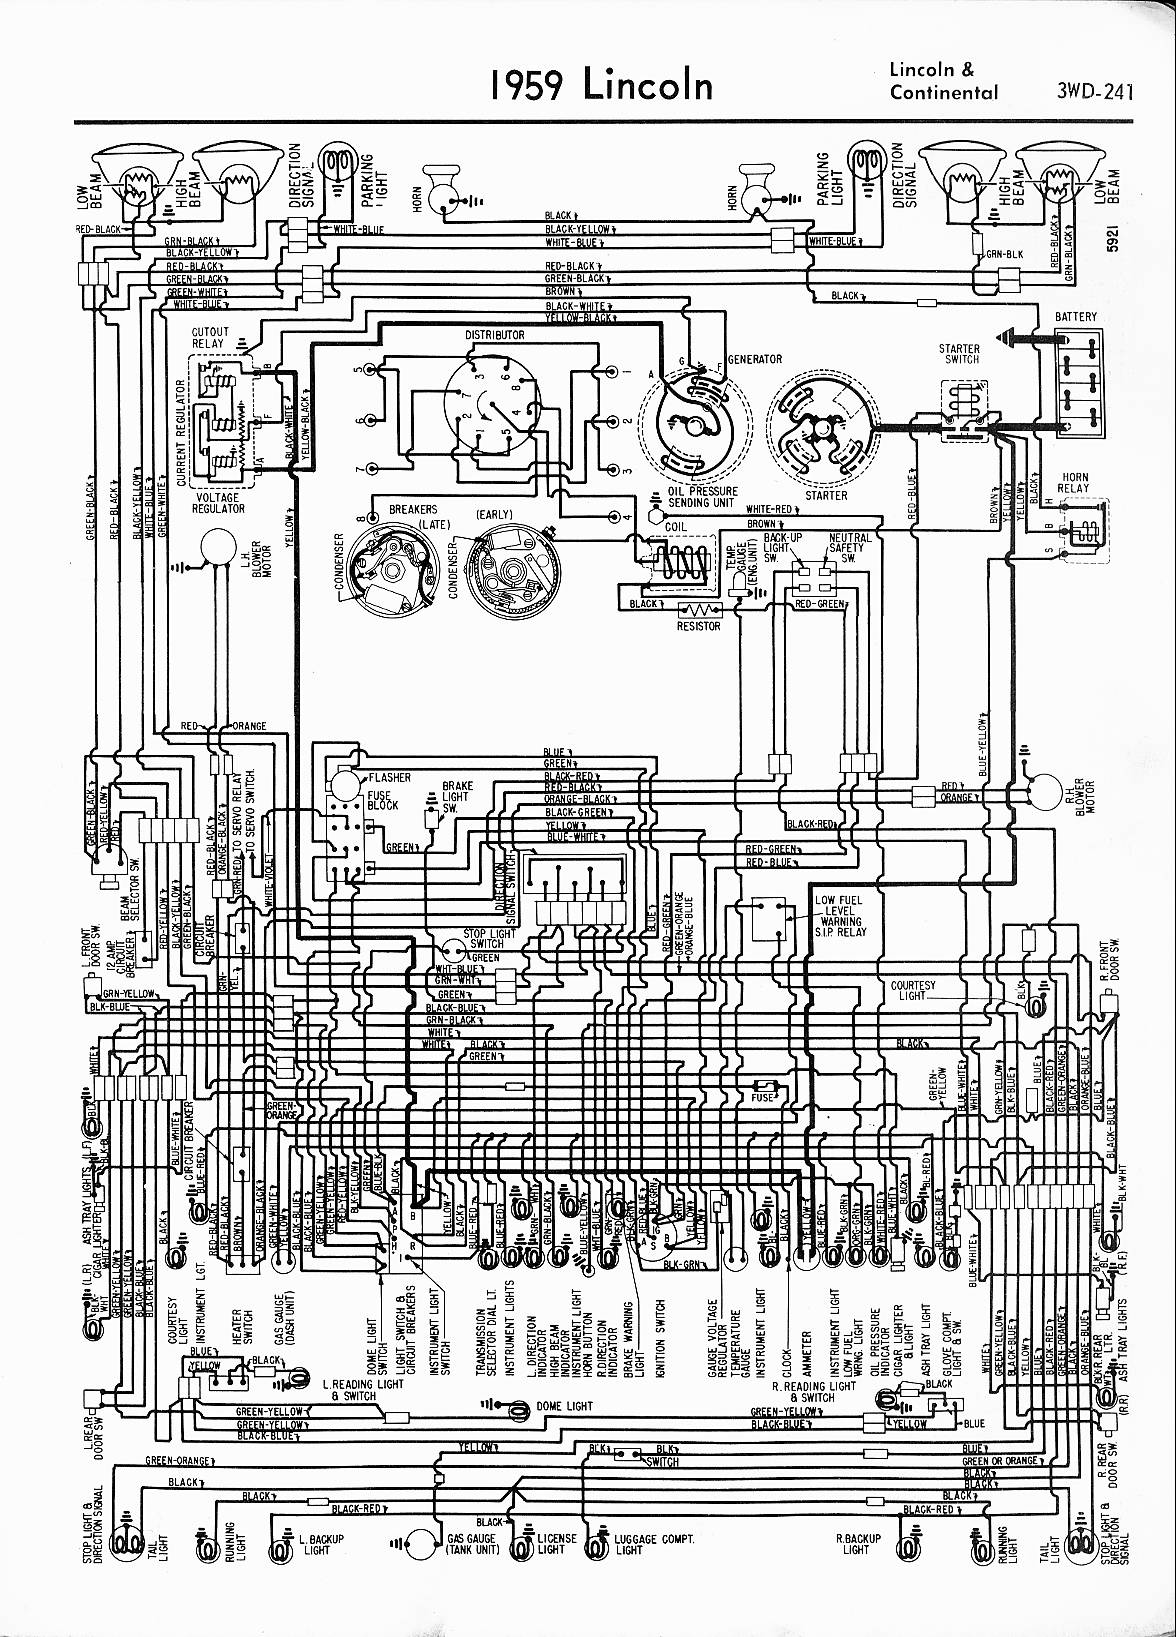 chevy ecm wiring diagram 1957 2006 best wiring library Chevy Transmission Diagram chevy ecm wiring diagram 1957 2006 wiring library 1990 chevy radio wiring diagram 1959 lincoln \u0026